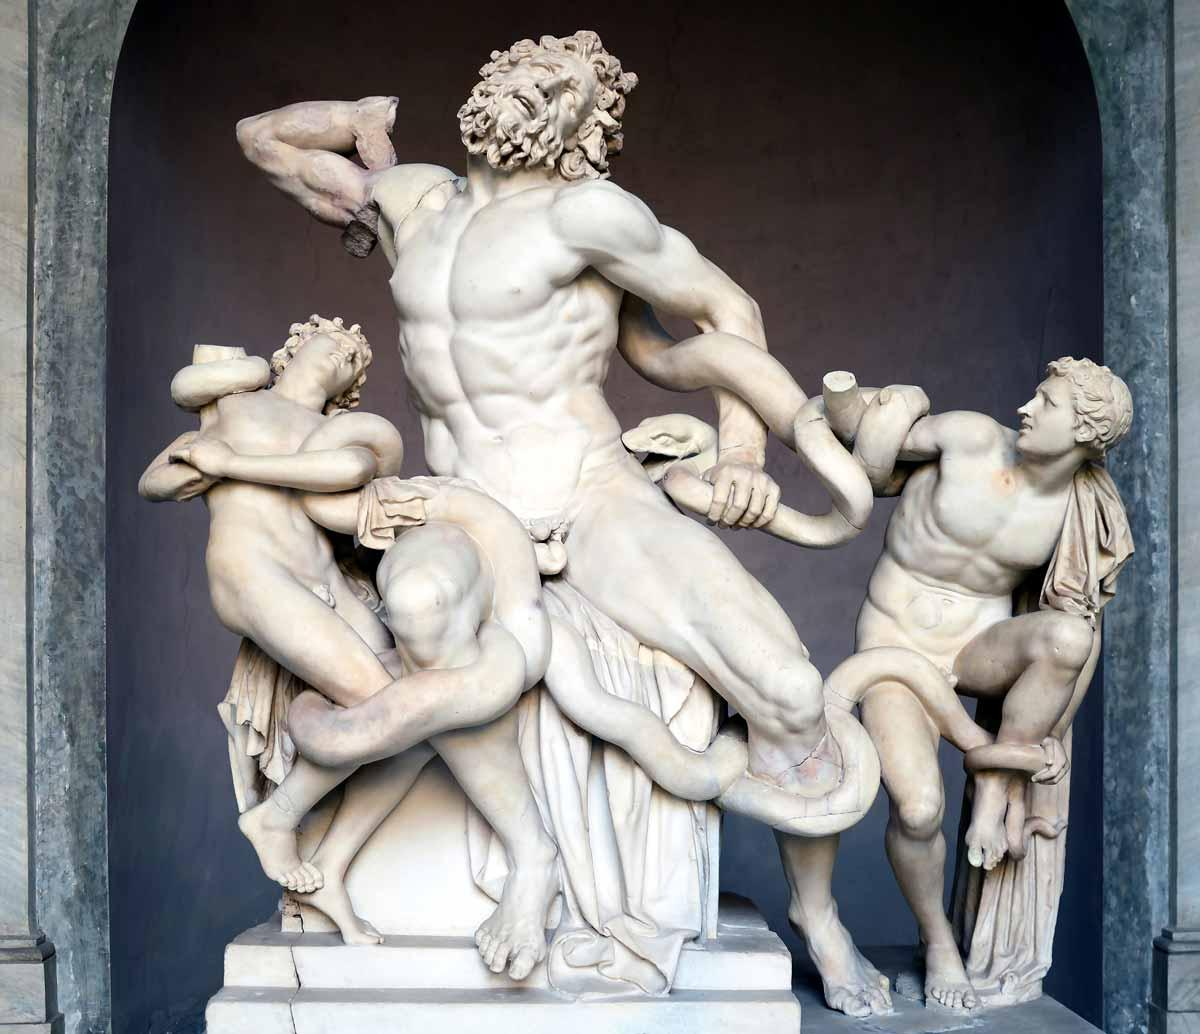 Laocoön and his sons, also known as the Laocoön Group. Marble, copy after an Hellenistic original from c. 200 BC. Found in the Baths of Trajan, 1506.